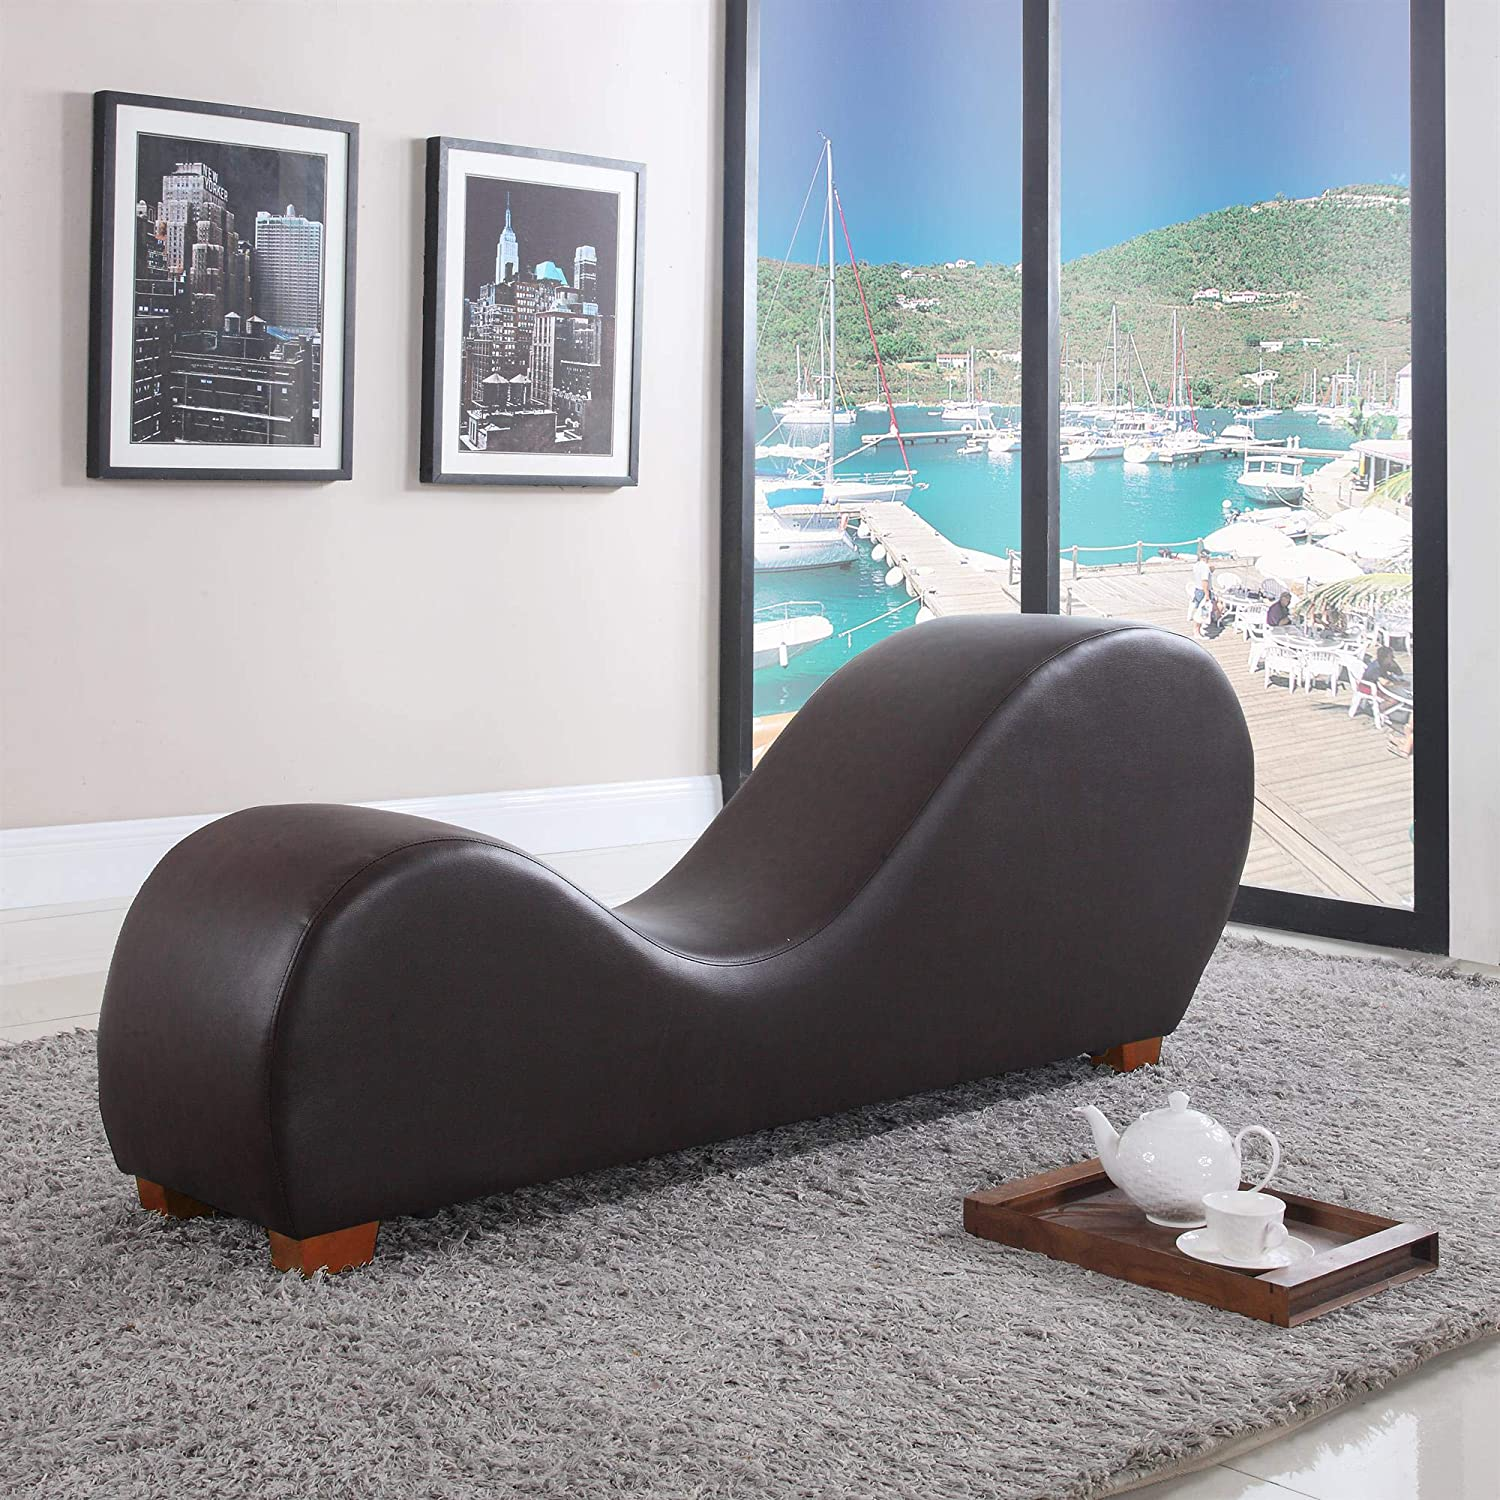 Fine Casa Andrea Milano Modern Brown Bonded Leather Yoga Stretch Chair Yoga Inversion Chaise Lounge Chair Indoor Stretching Rest Chair Lounger Chairs Spiritservingveterans Wood Chair Design Ideas Spiritservingveteransorg